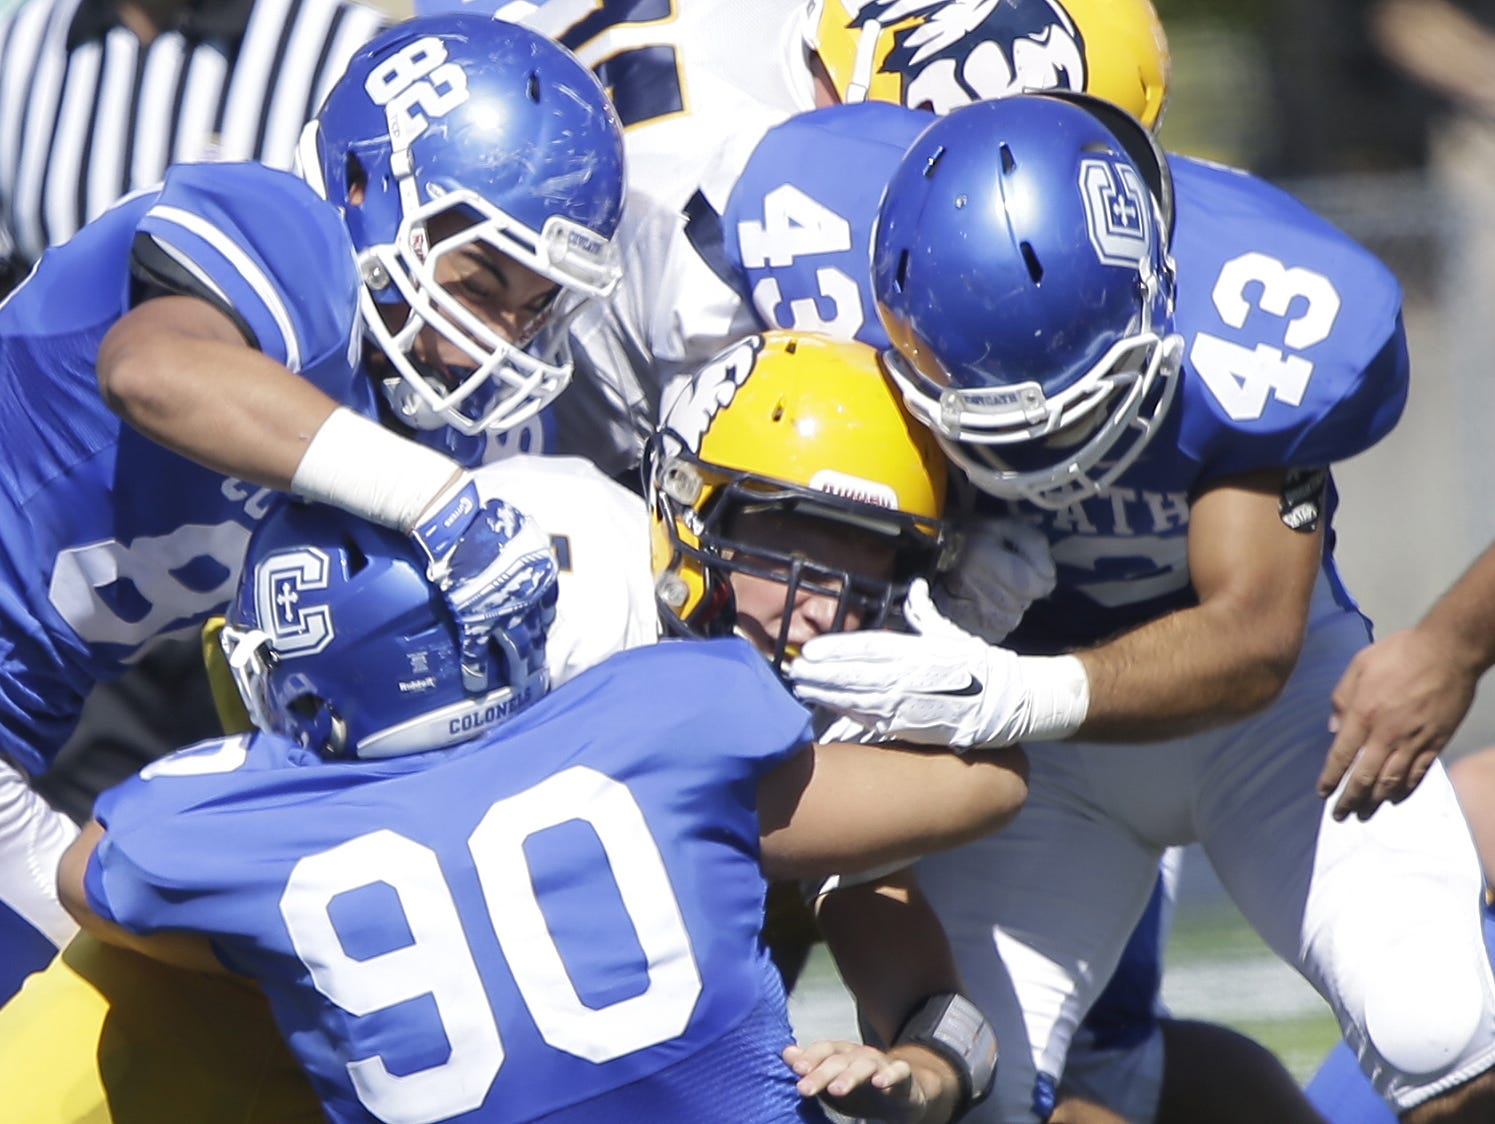 Grant County's Nick Stephenson (5) is tackled by several Covington Catholic defenders during their football game Saturday.